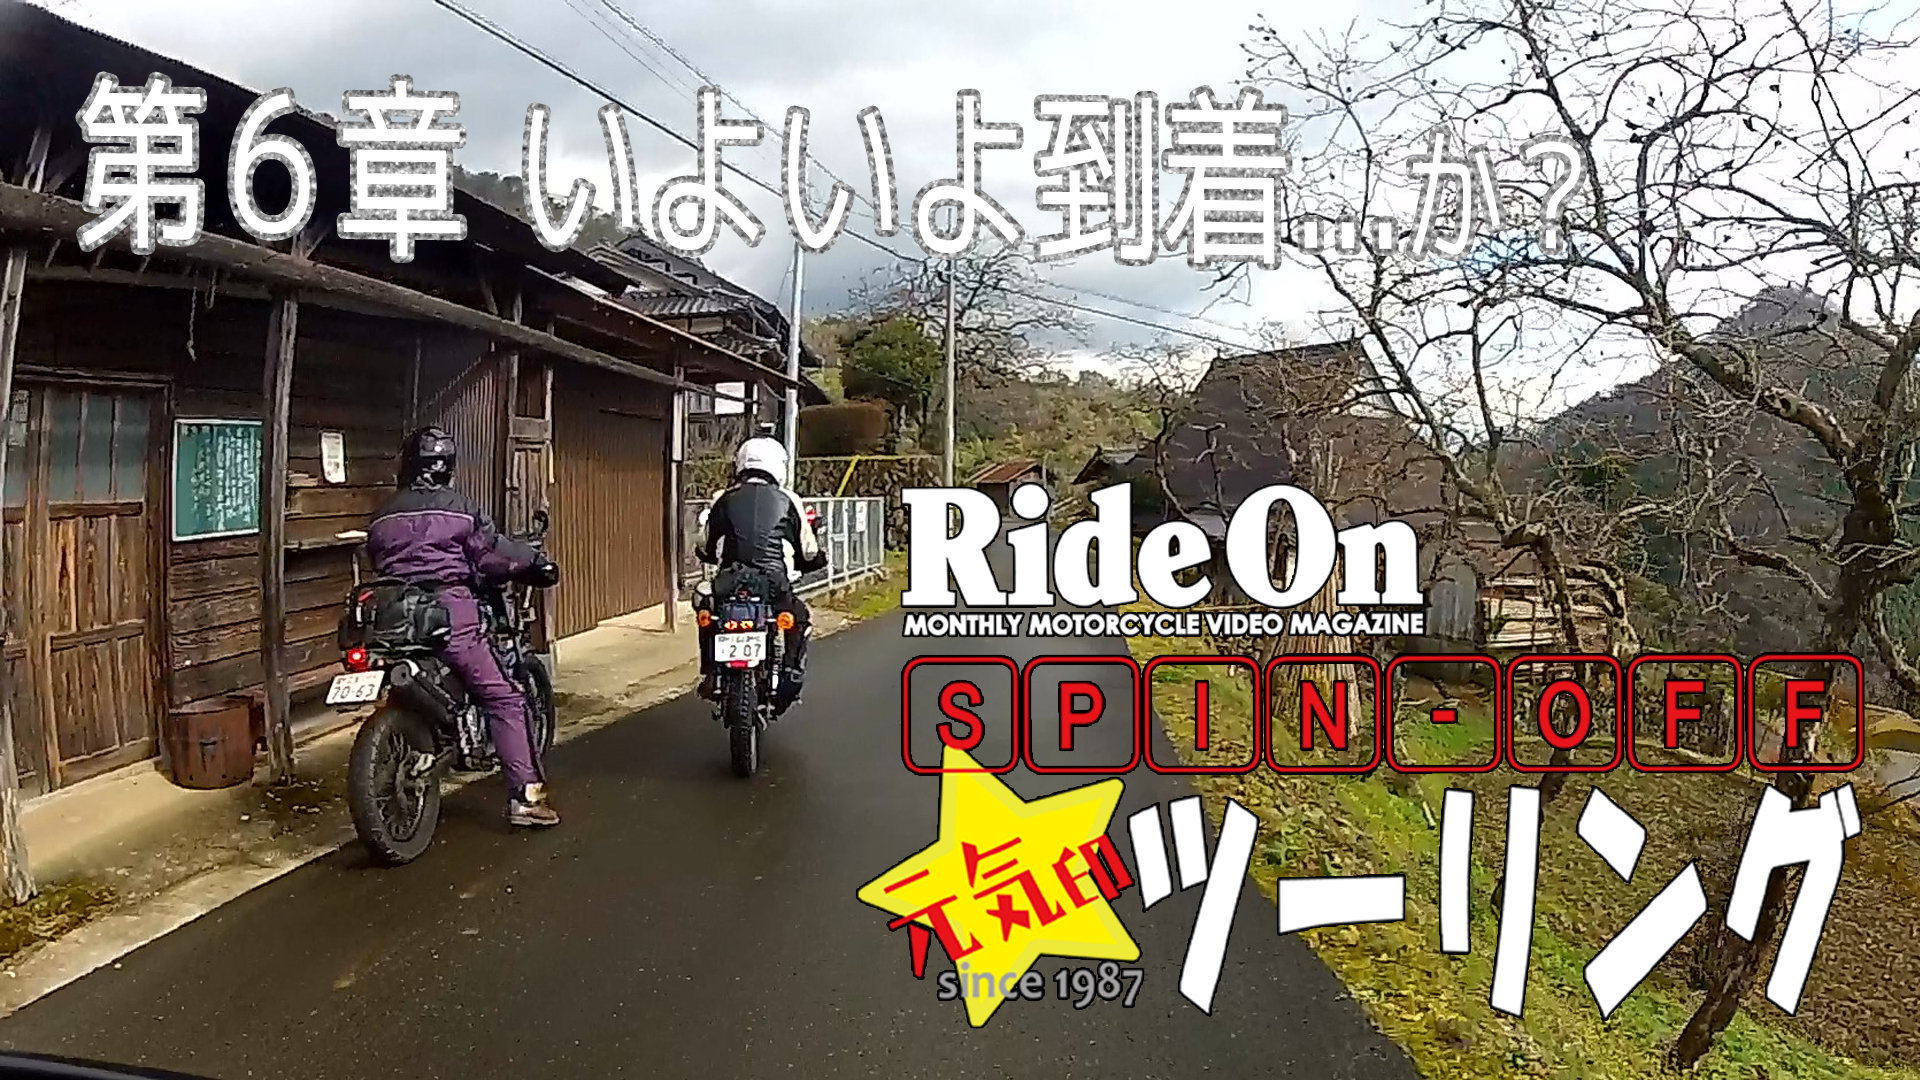 RIDE ON SPIN OFF 企画「元気印ツーリング」第6章(いよいよ到着…か?)